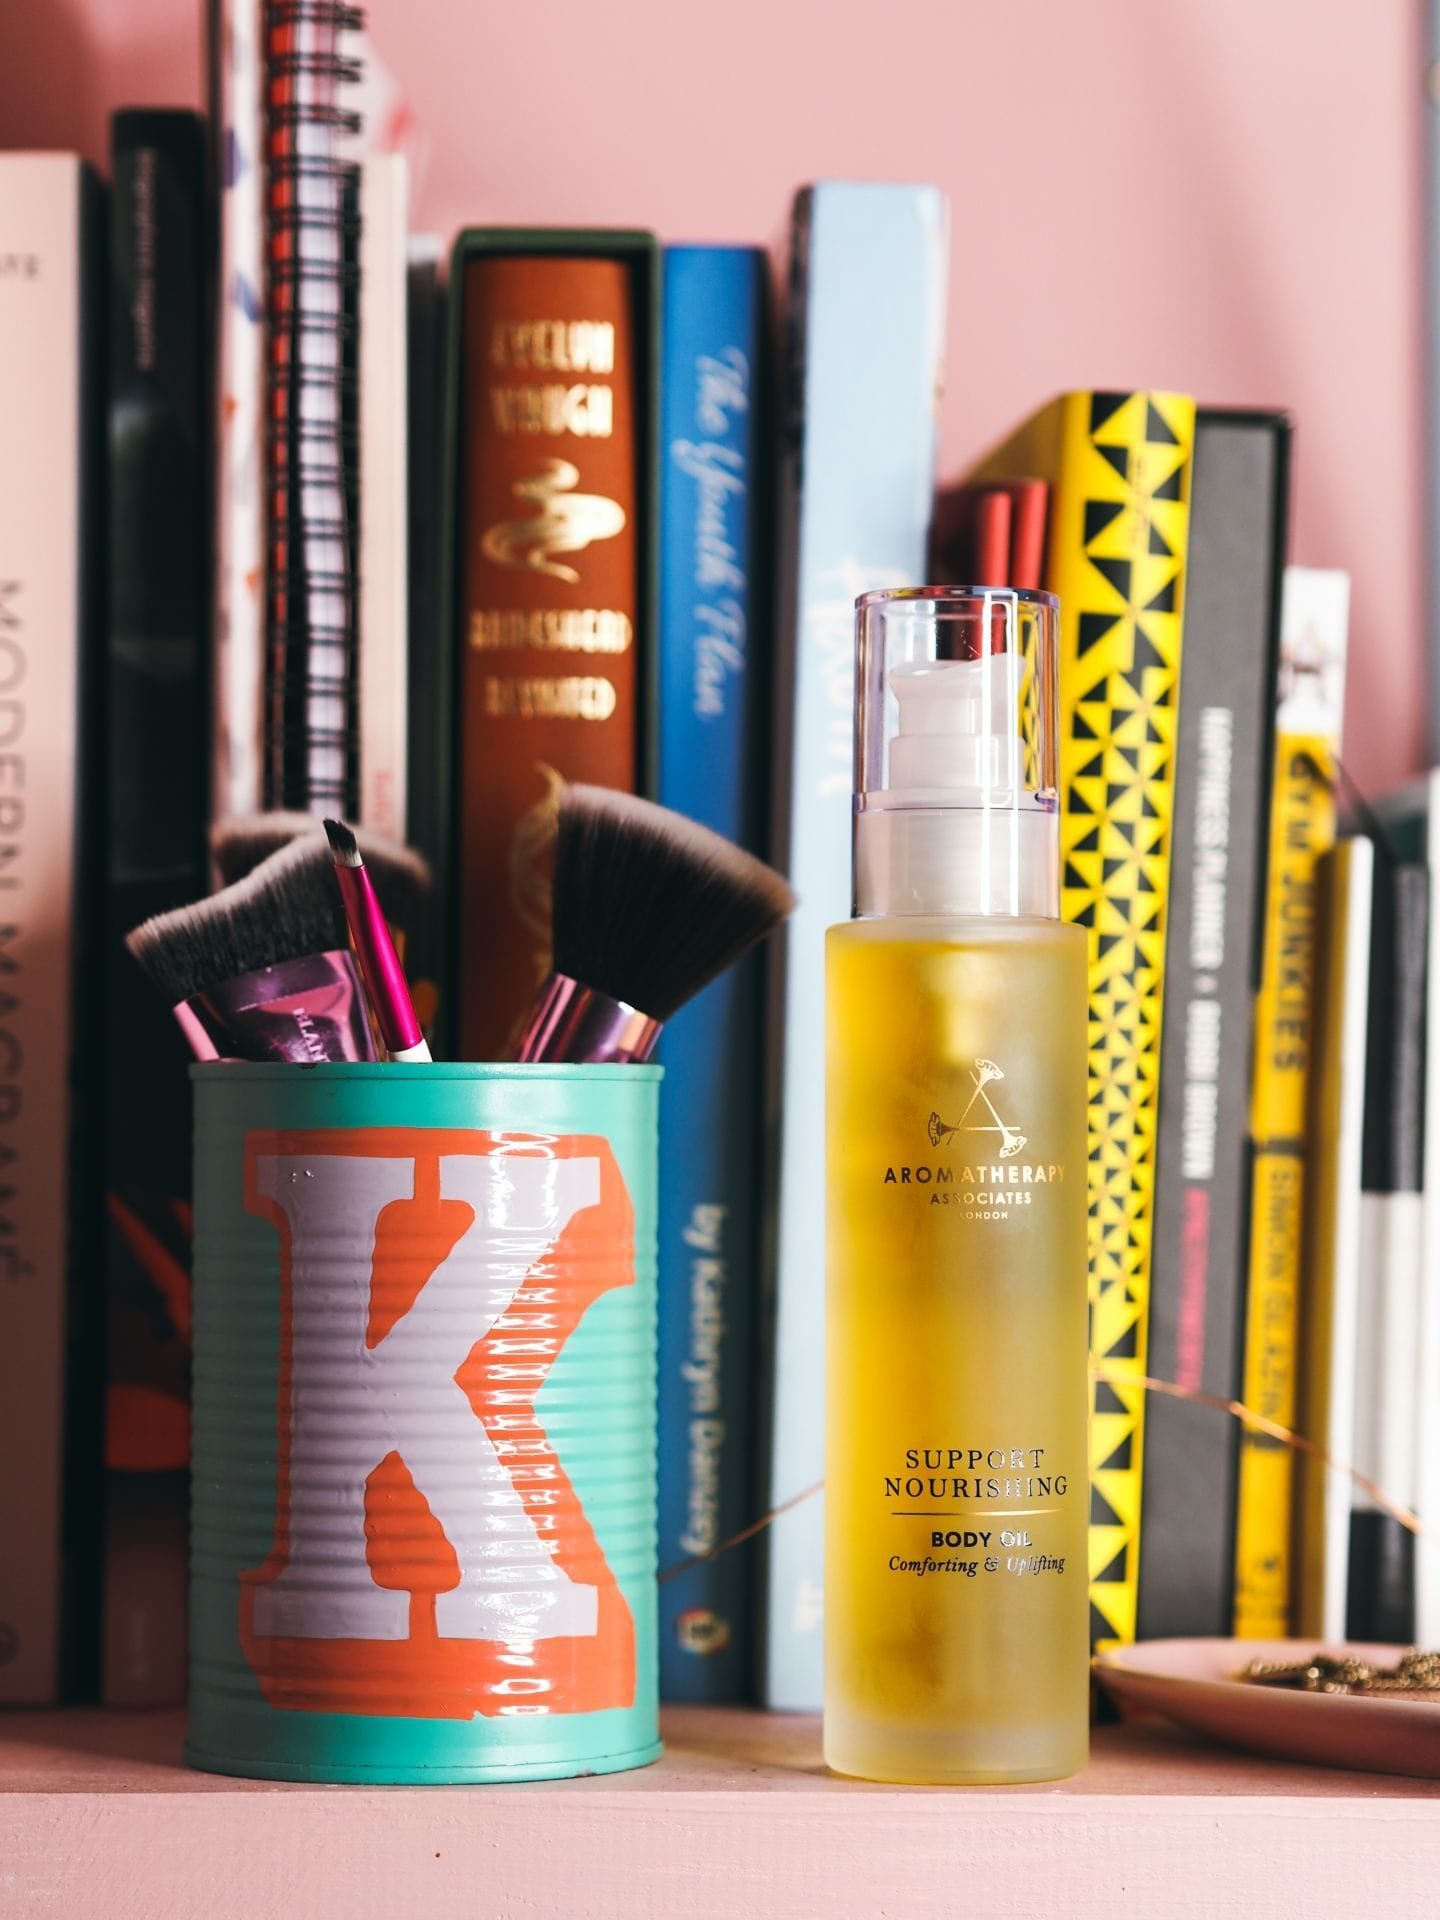 Aromatherapy Associates Body Oil